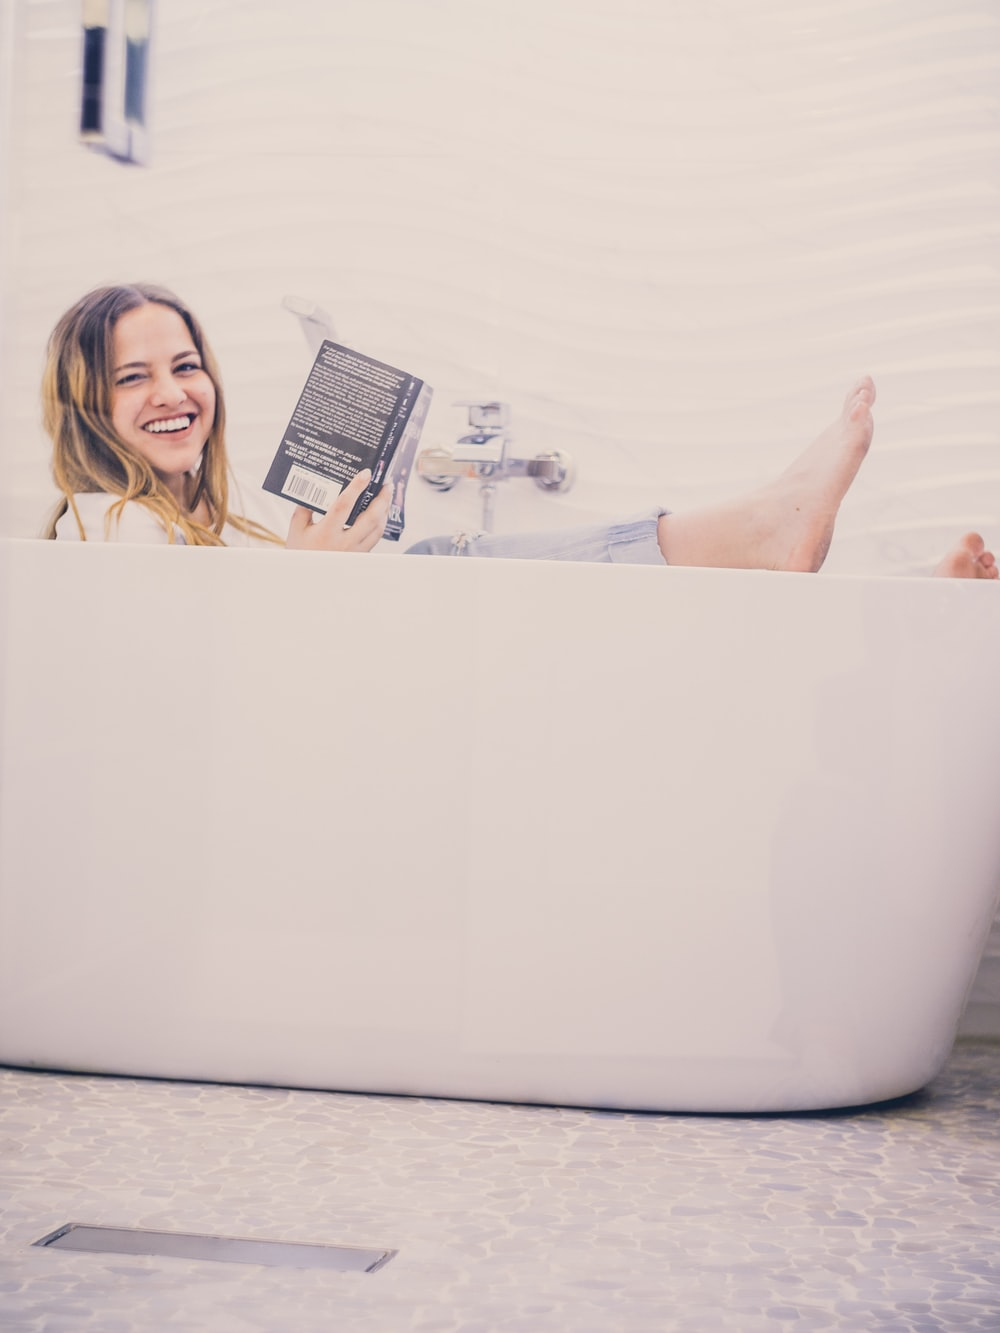 woman in bathtub holding black book while taking selfie